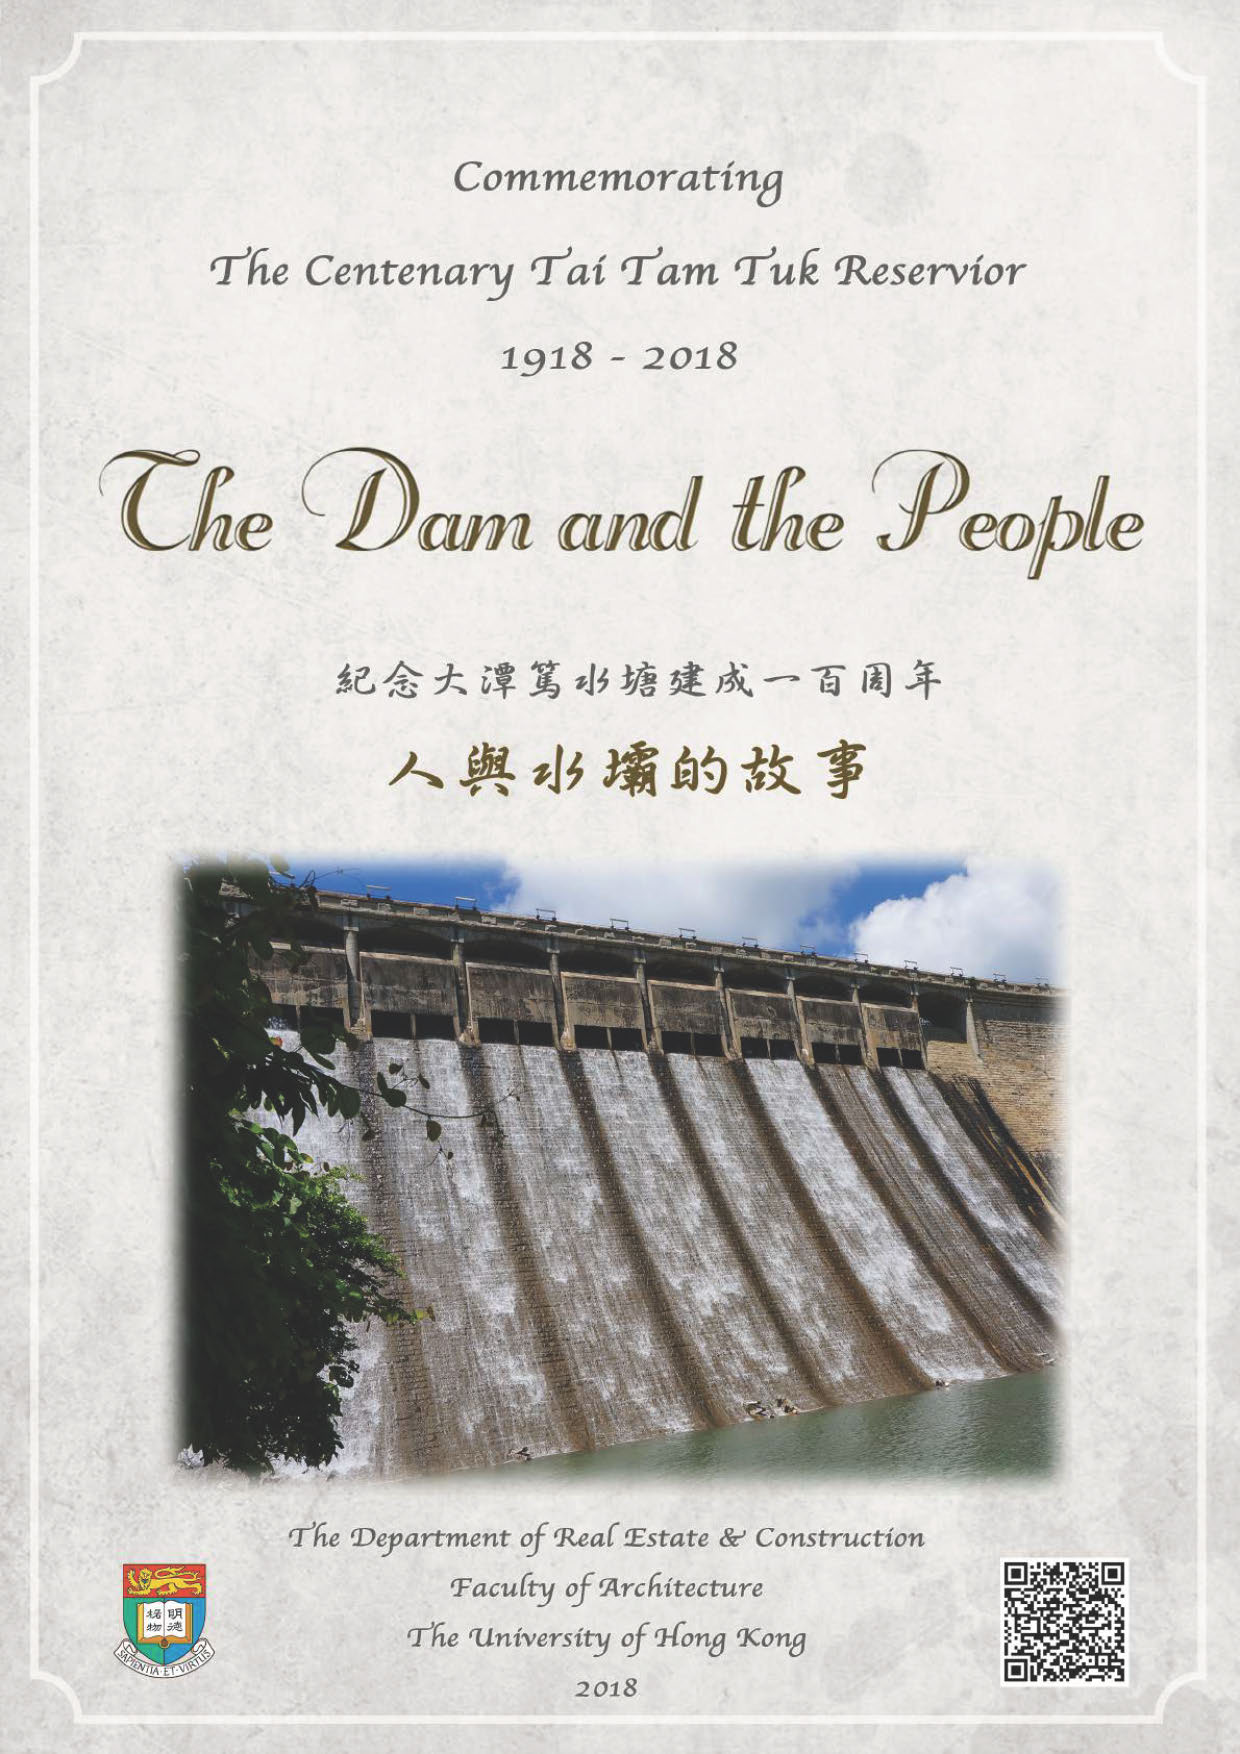 Commemorating the Centenary of Tai Tam Tuk Reservoir – The Dam and the People